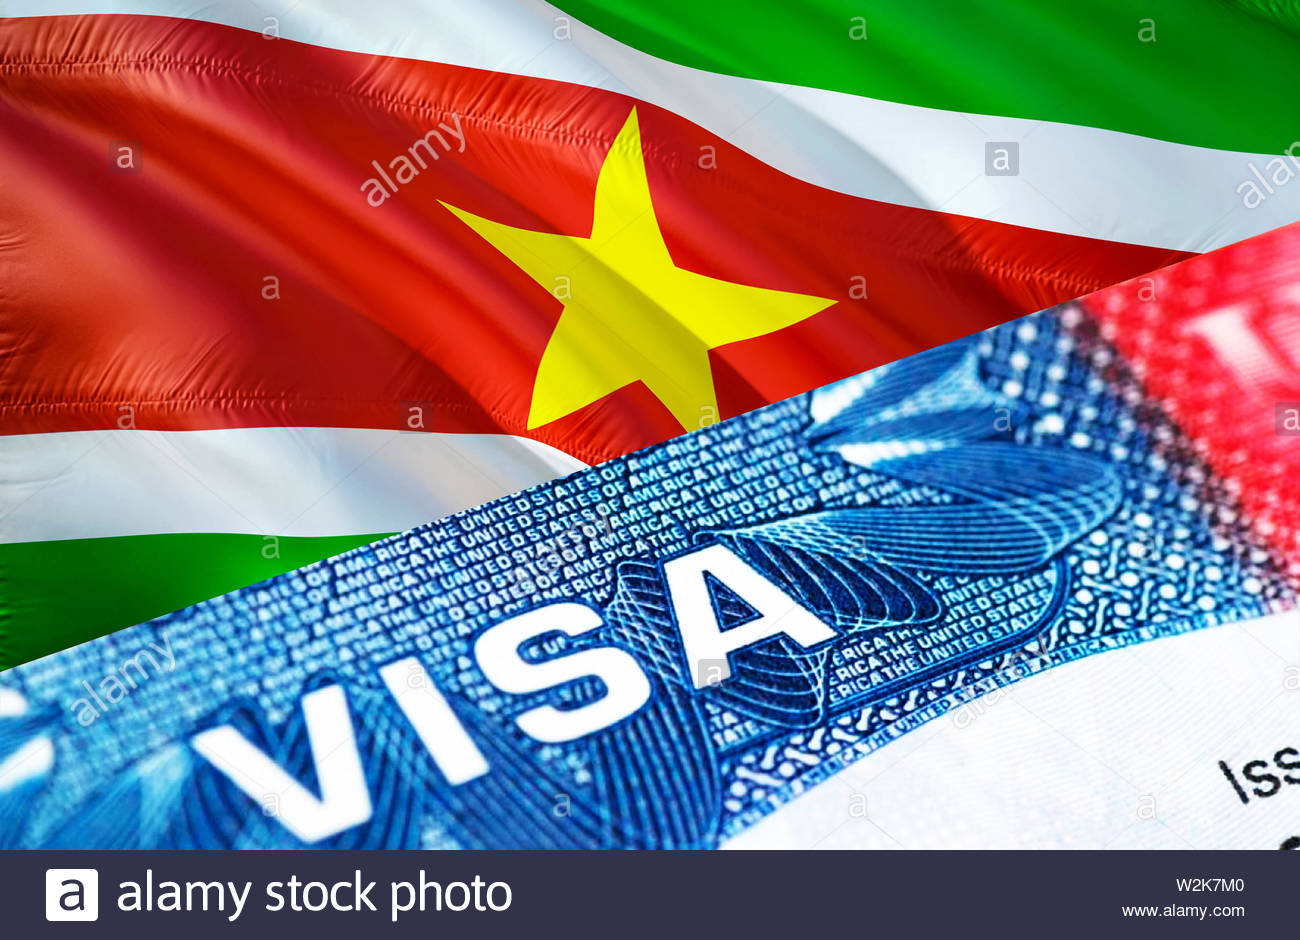 text VISA on Suriname visa stamp in passport, 3D rendering. passport traveling abroad concept. Travel to Suriname concept - selective focus. Immigrati - Stock Image